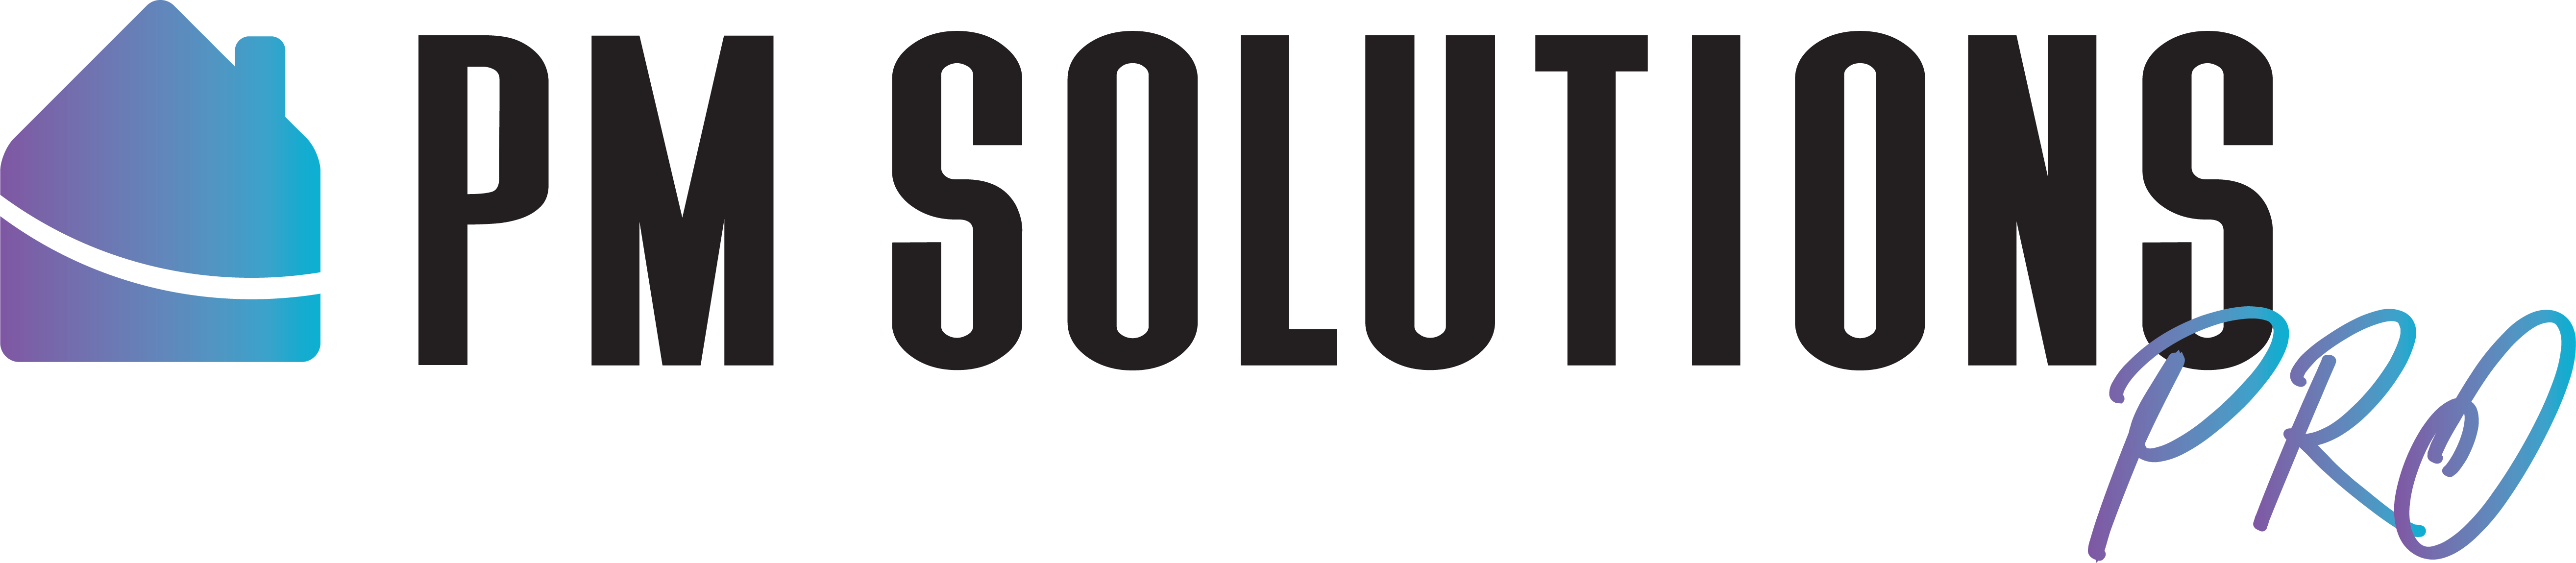 PM Solutions Pro